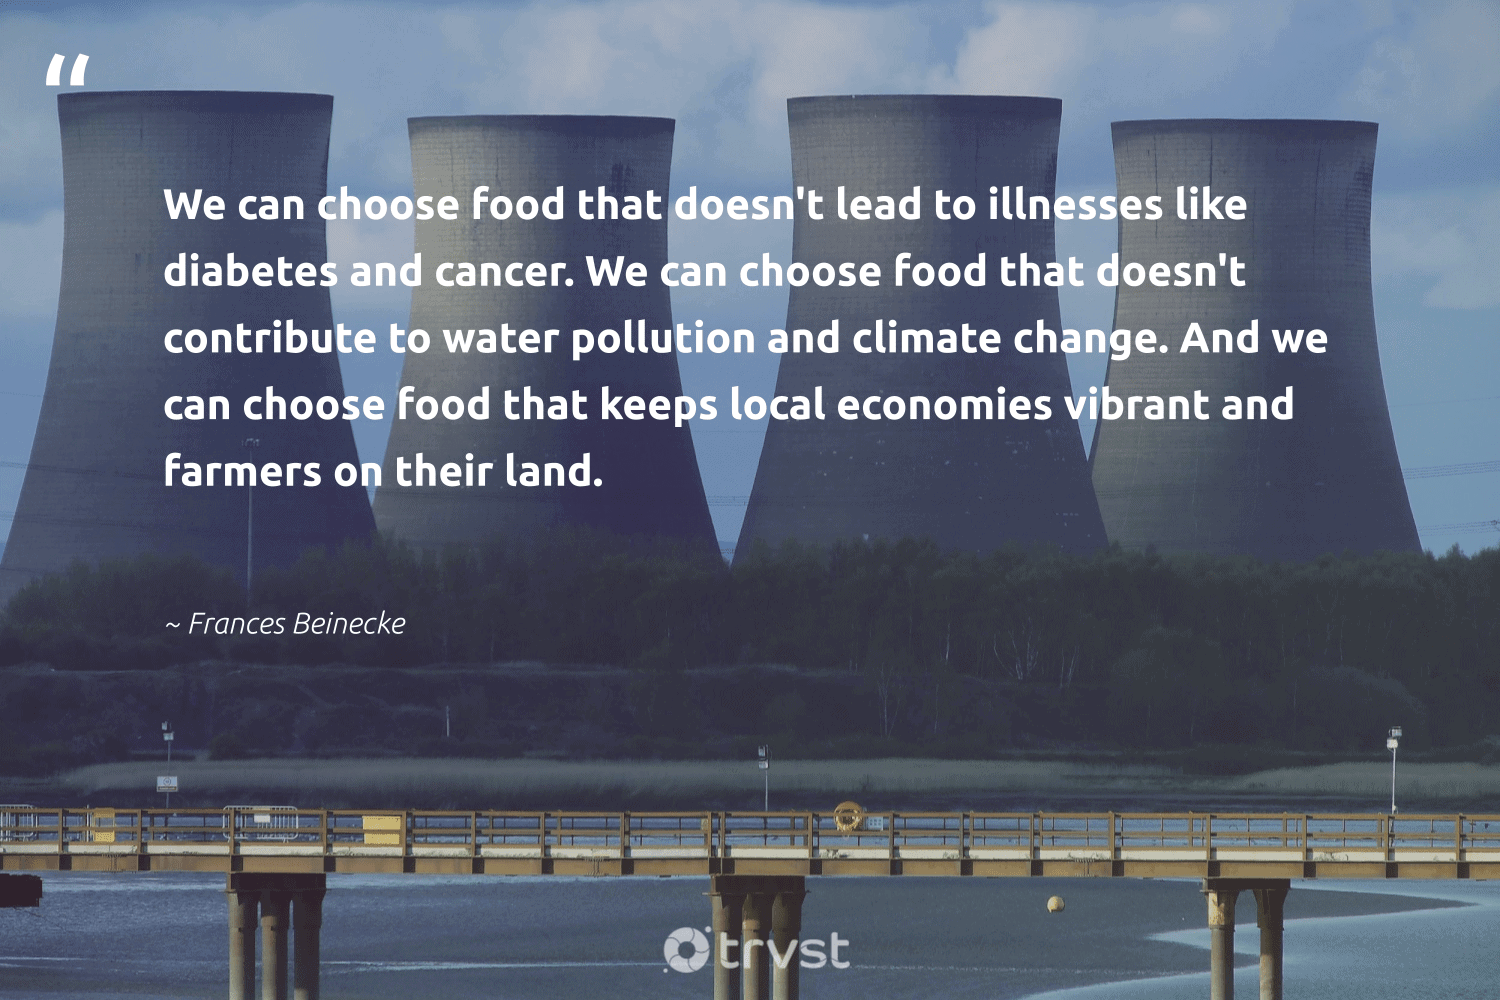 """""""We can choose food that doesn't lead to illnesses like diabetes and cancer. We can choose food that doesn't contribute to water pollution and climate change. And we can choose food that keeps local economies vibrant and farmers on their land.""""  - Frances Beinecke #trvst #quotes #climatechange #water #pollution #climate #food #climatechangeisreal #toxic #globalwarming #climateaction #collectiveaction"""